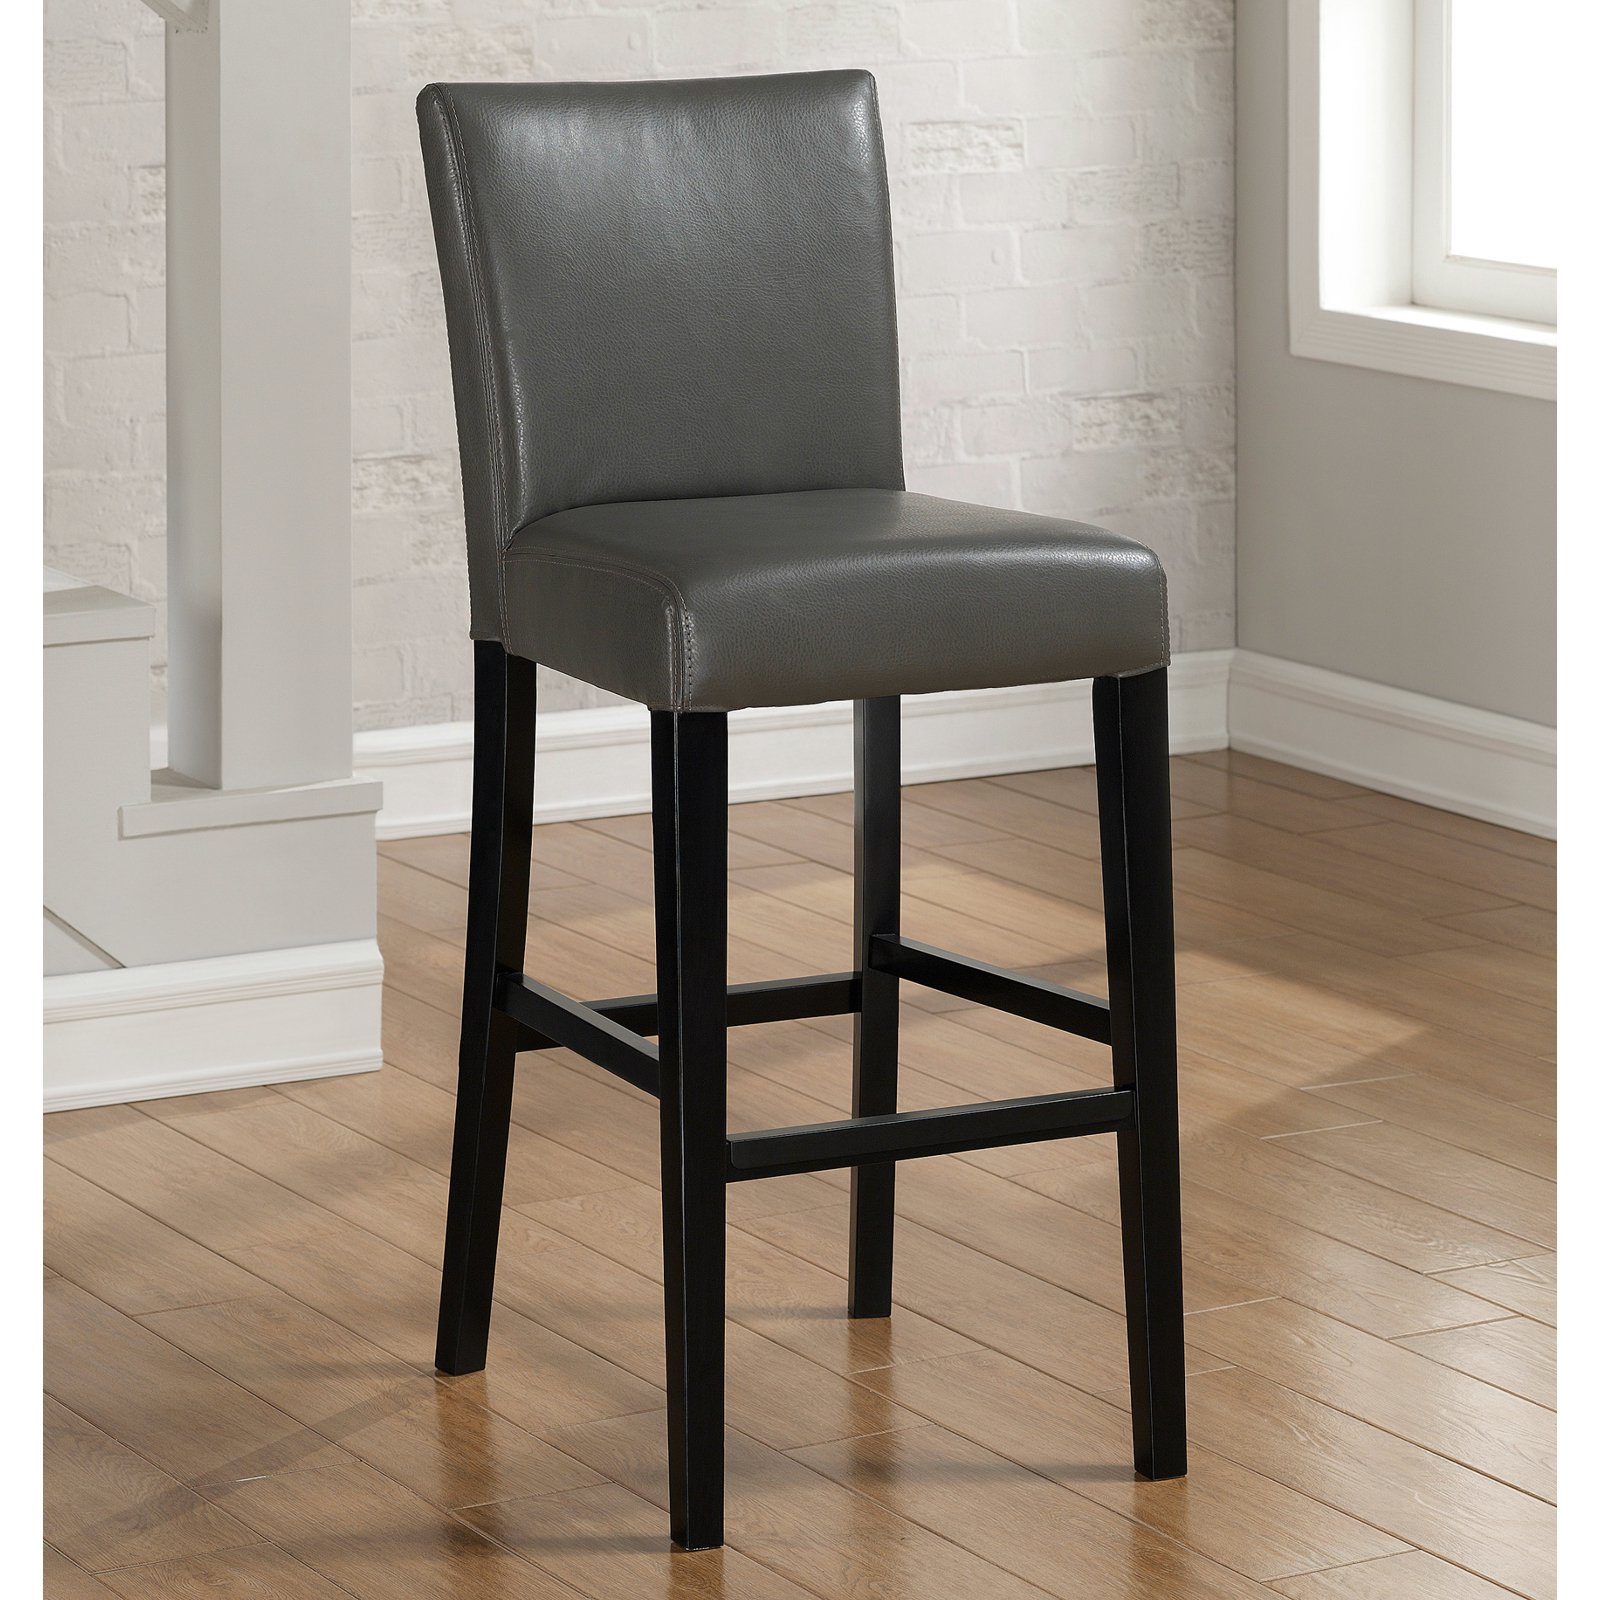 American Heritage Billiards Albany Upholstered Counter Stool by American Heritage Billiards